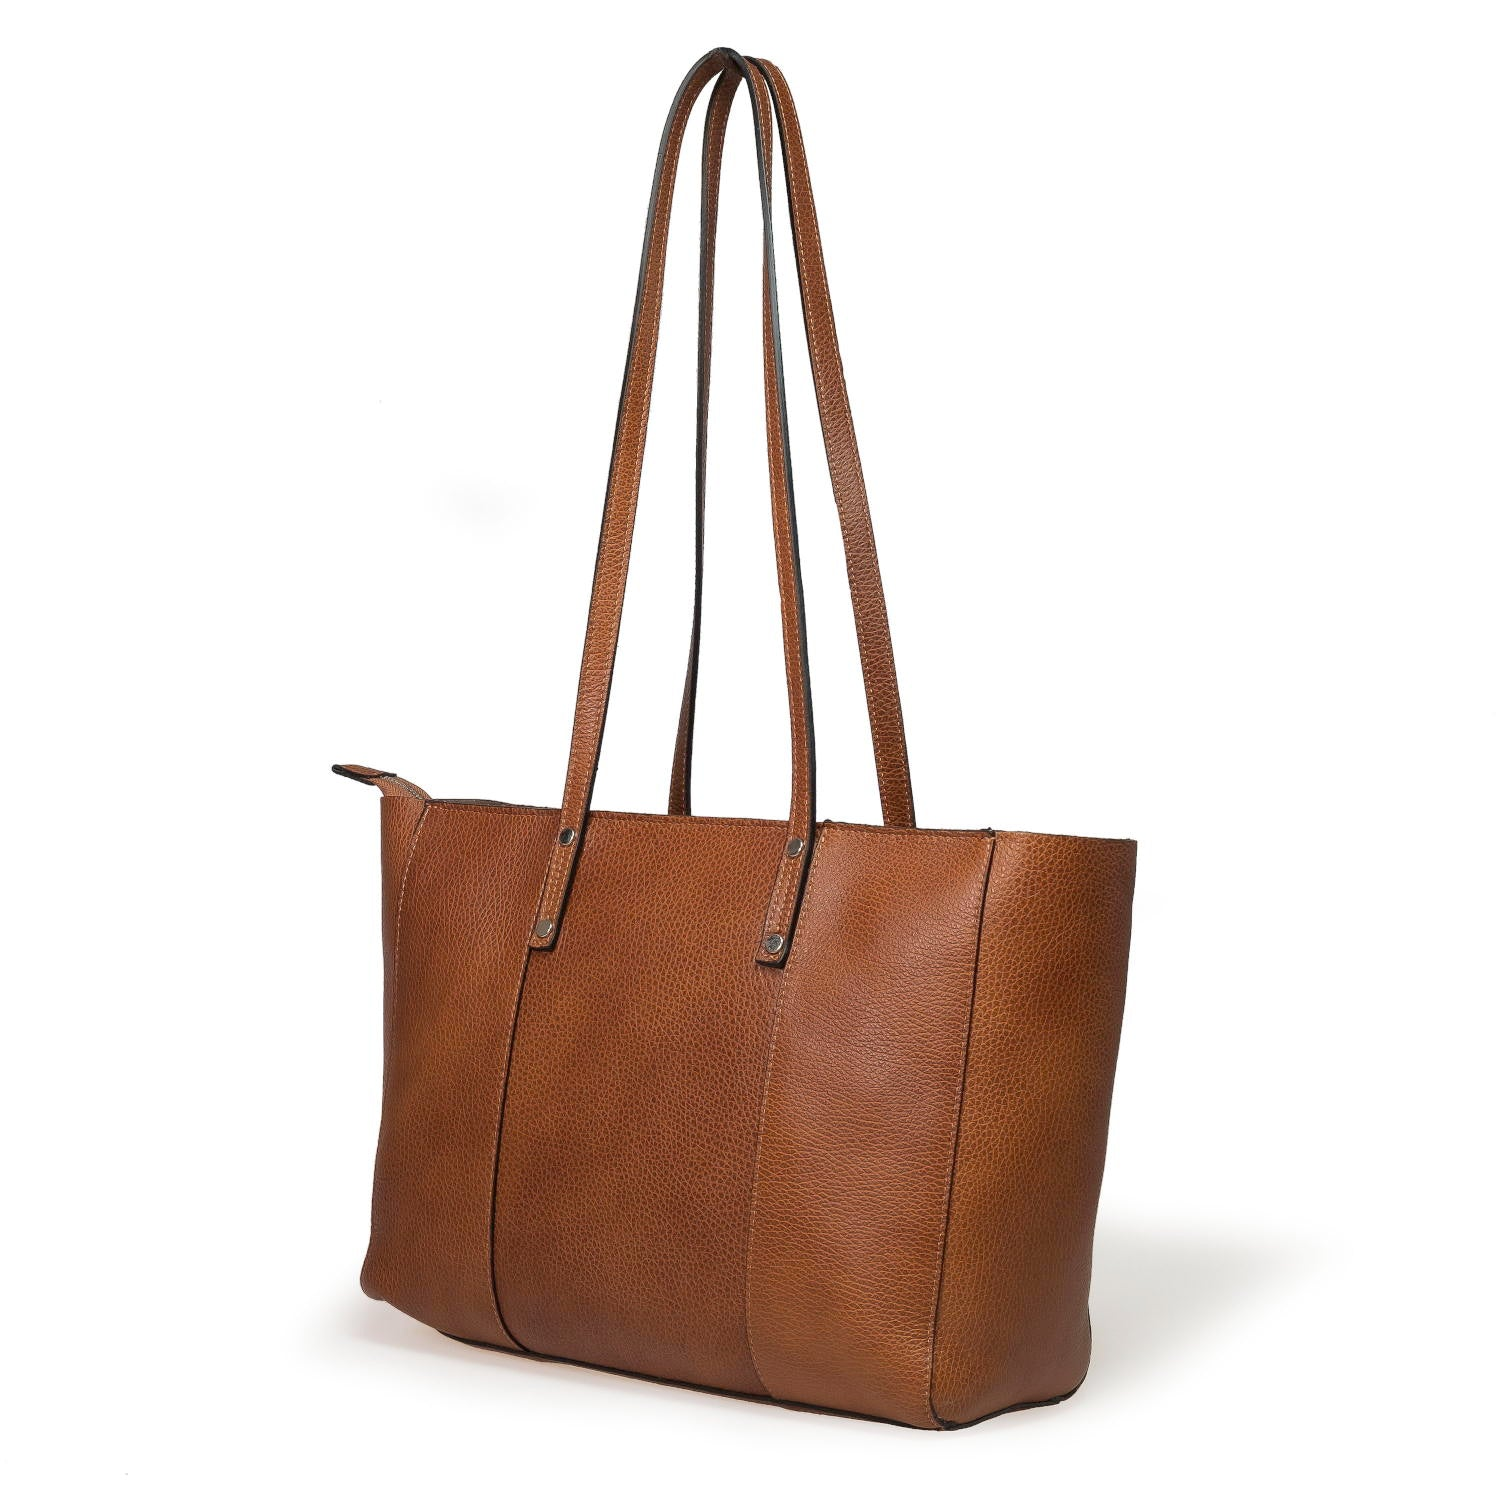 Raticosa Italian Leather Tote